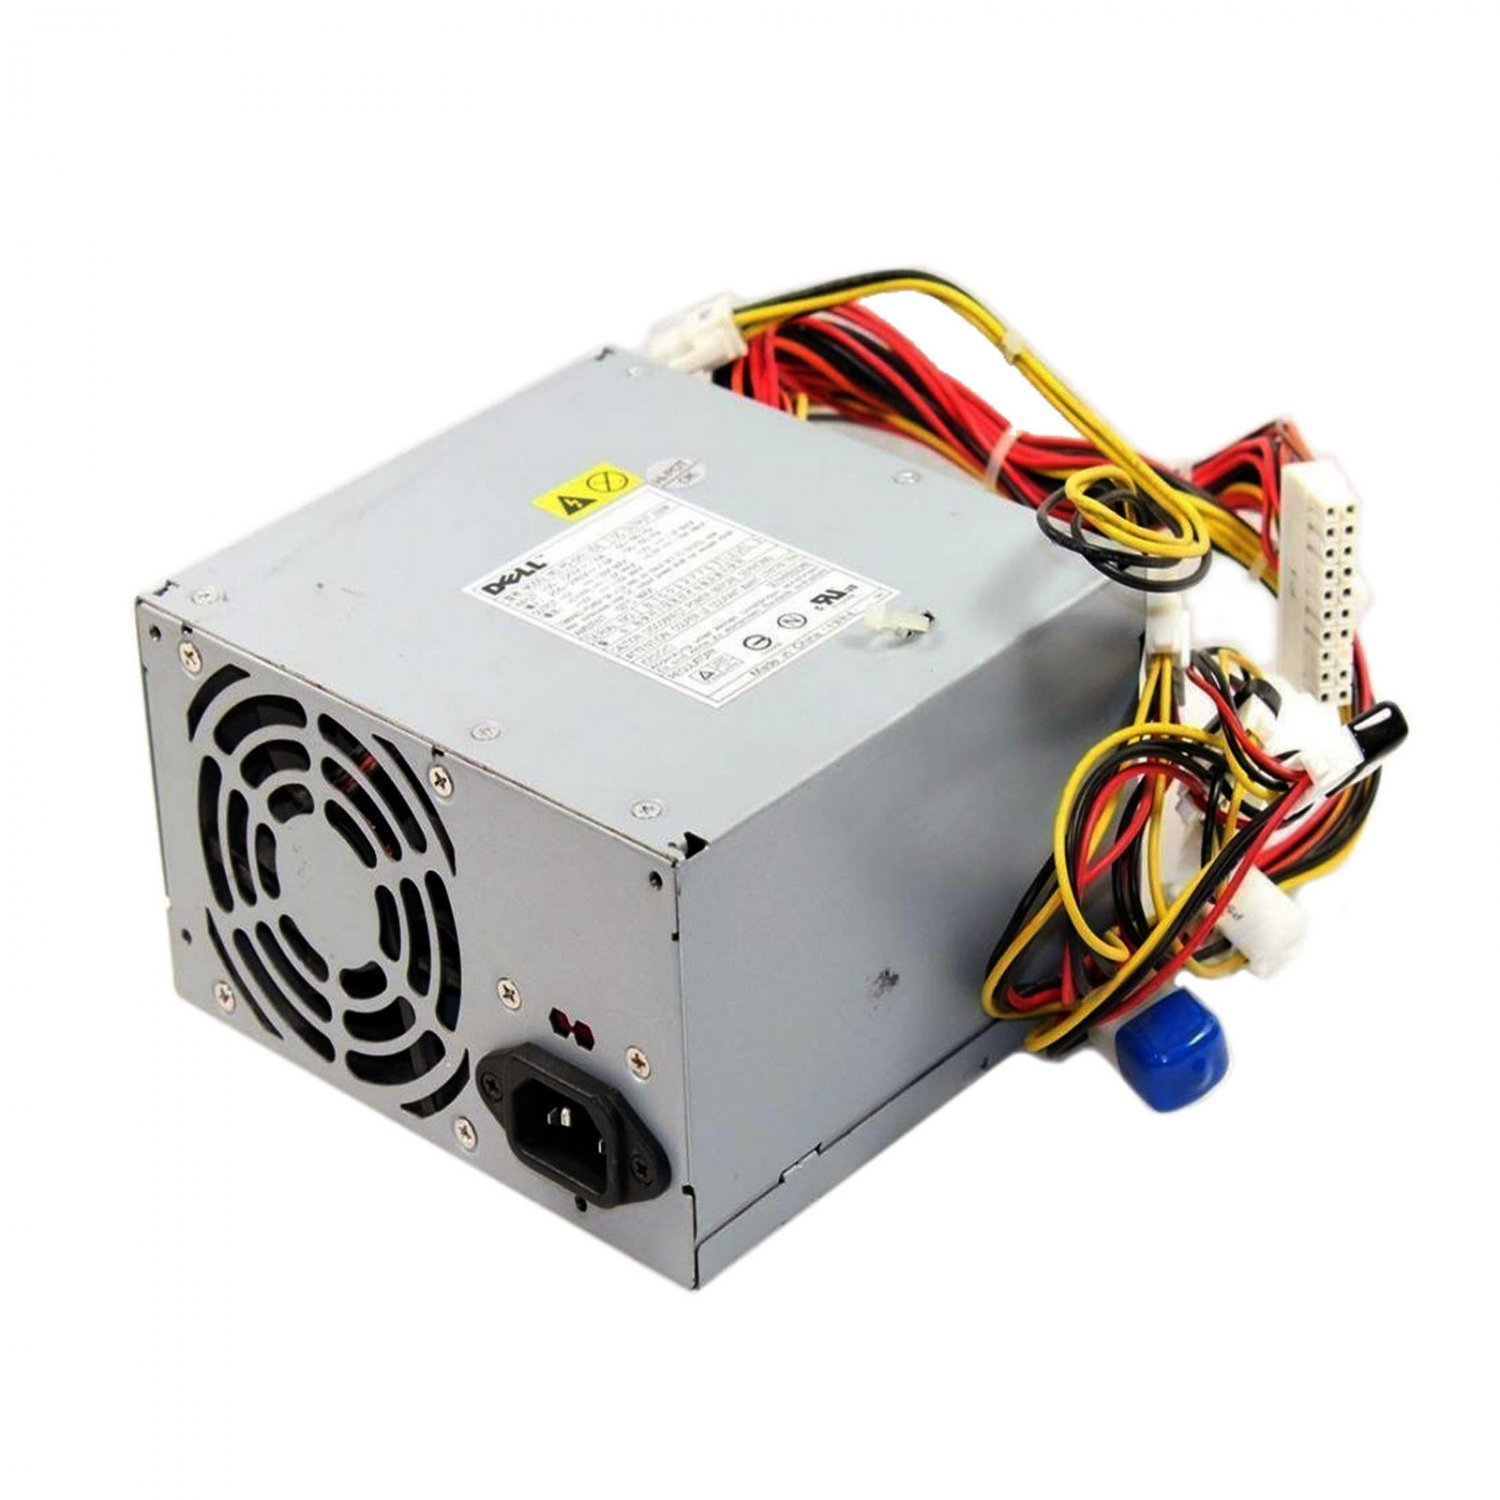 OEM Dell Dimension 1100 250W ATX Desktop Power Supply - PS-5251-2DS - M0148